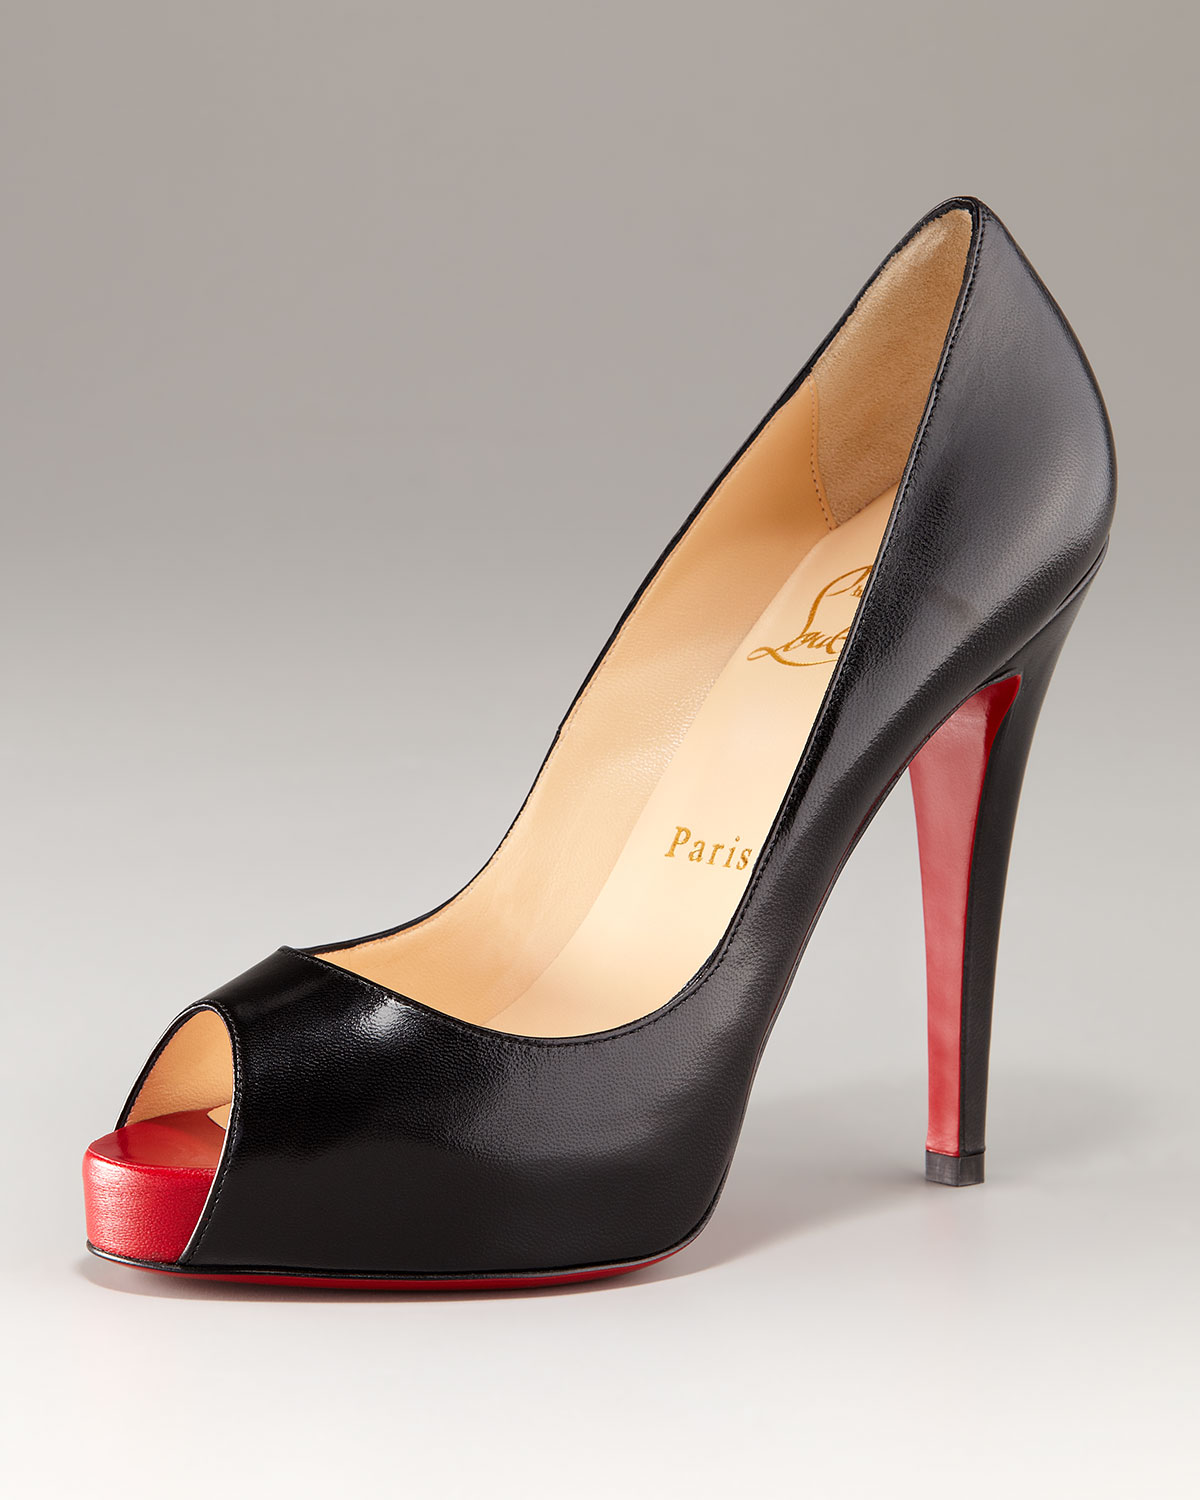 christian louboutin satin peep-toe Very Prive pumps | The Little ...